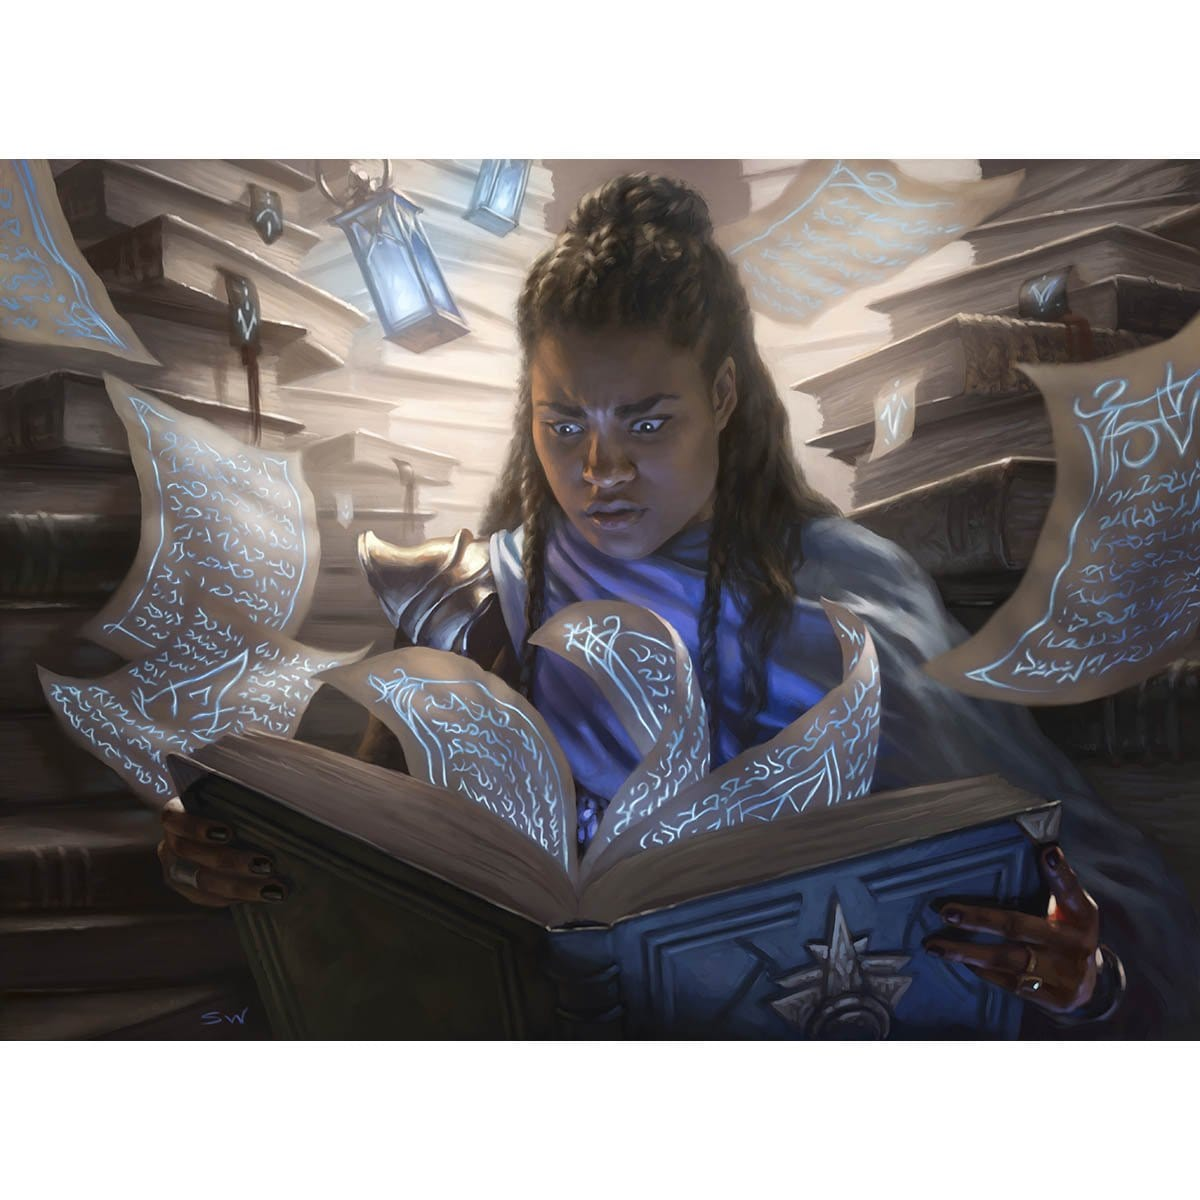 Compulsive Research Print - Print - Original Magic Art - Accessories for Magic the Gathering and other card games